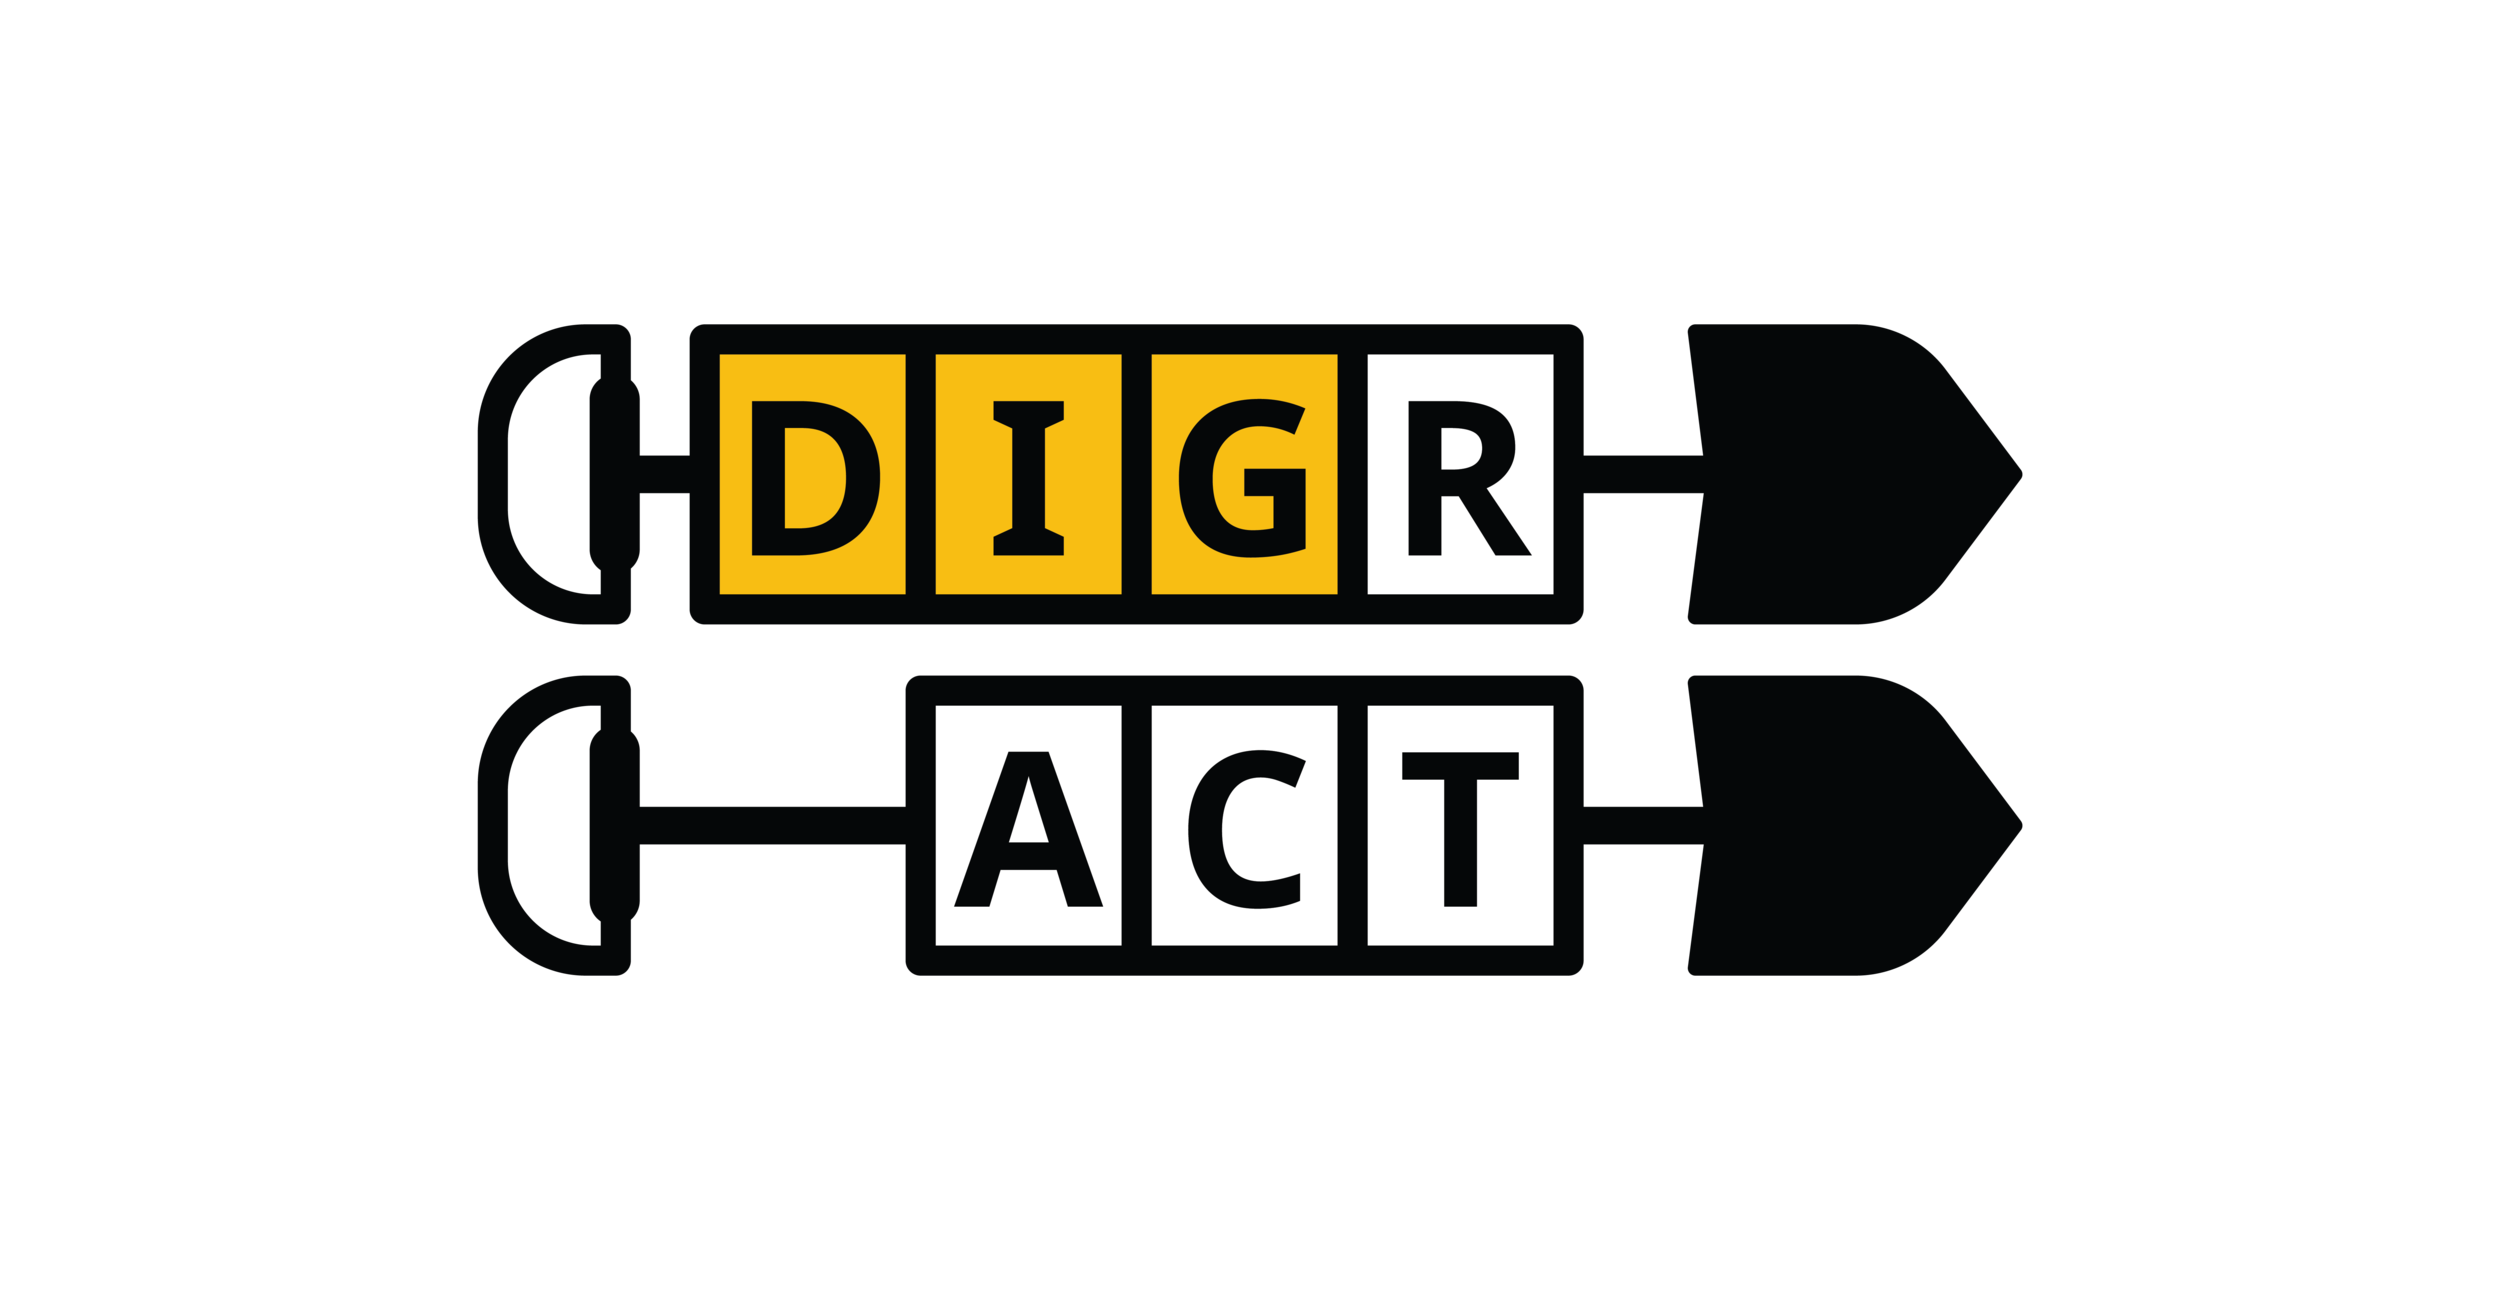 DIGR-ACT® Solution